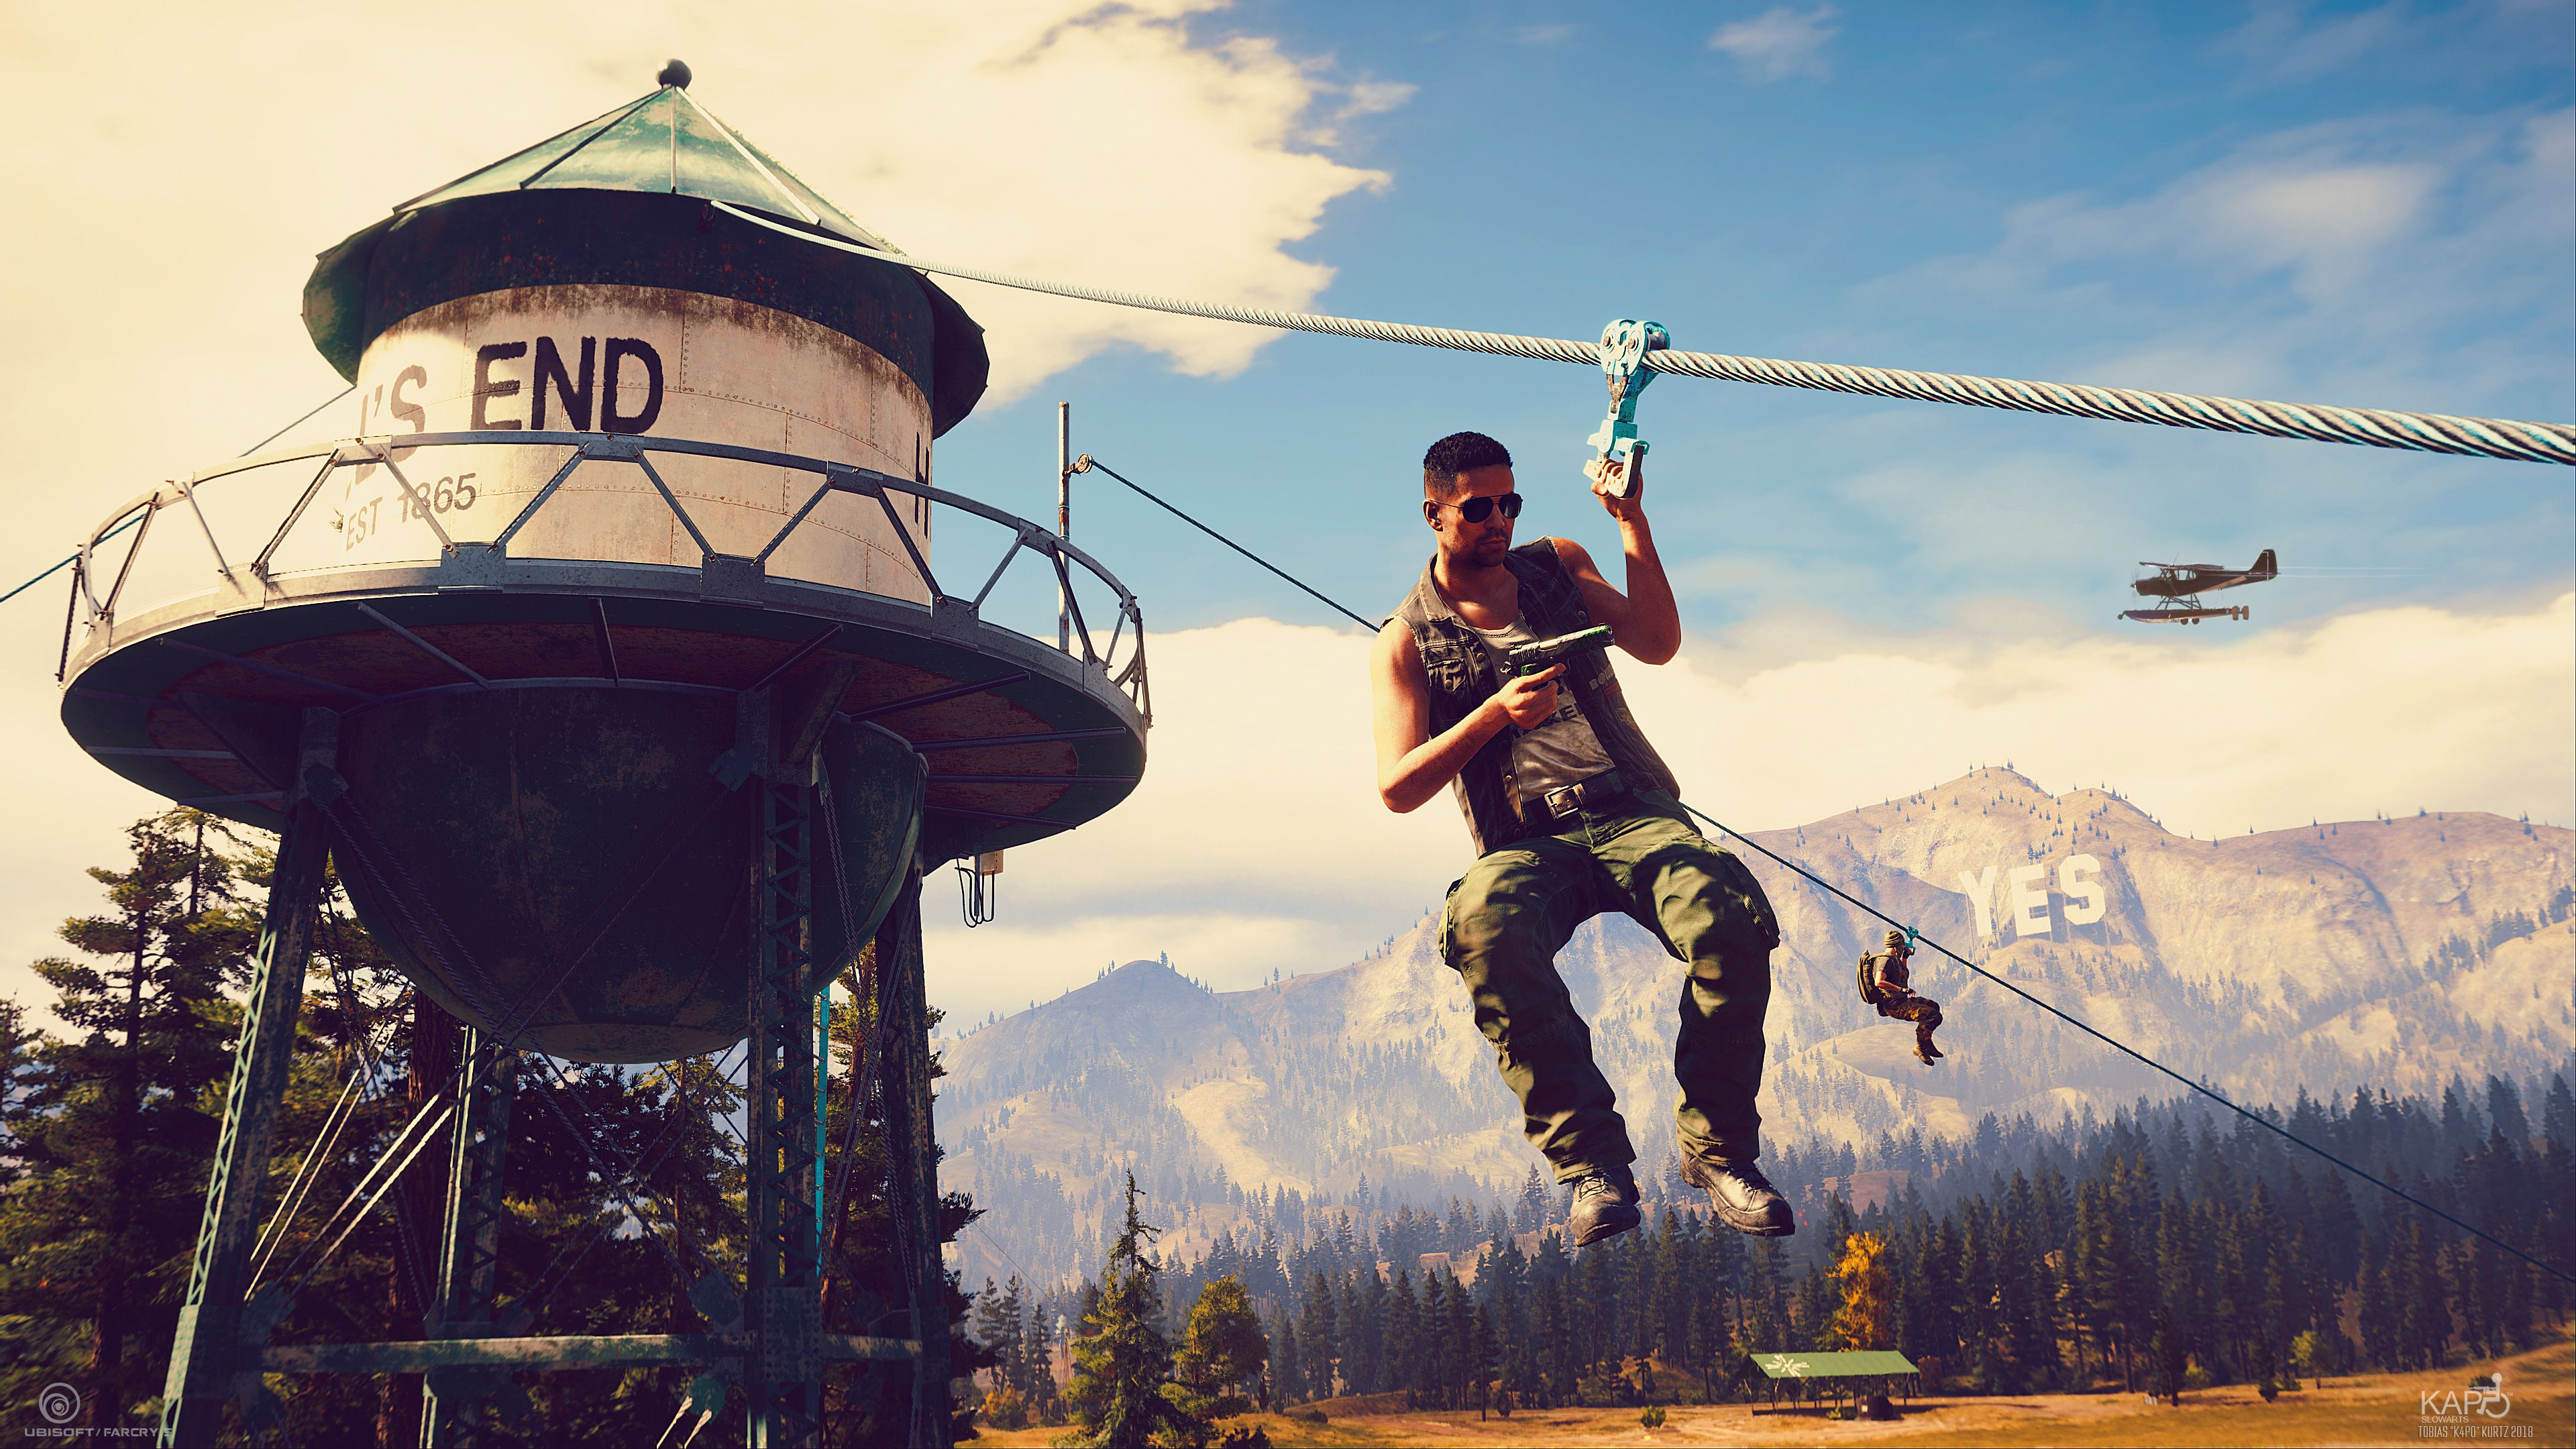 Far Cry 5 4k Hd Wallpapers Games Wallpapers Far Cry 5 Wallpapers 4k Wallpapers 2018 Games Wallpapers Hd Wallpaper Digital Wallpaper Background Images